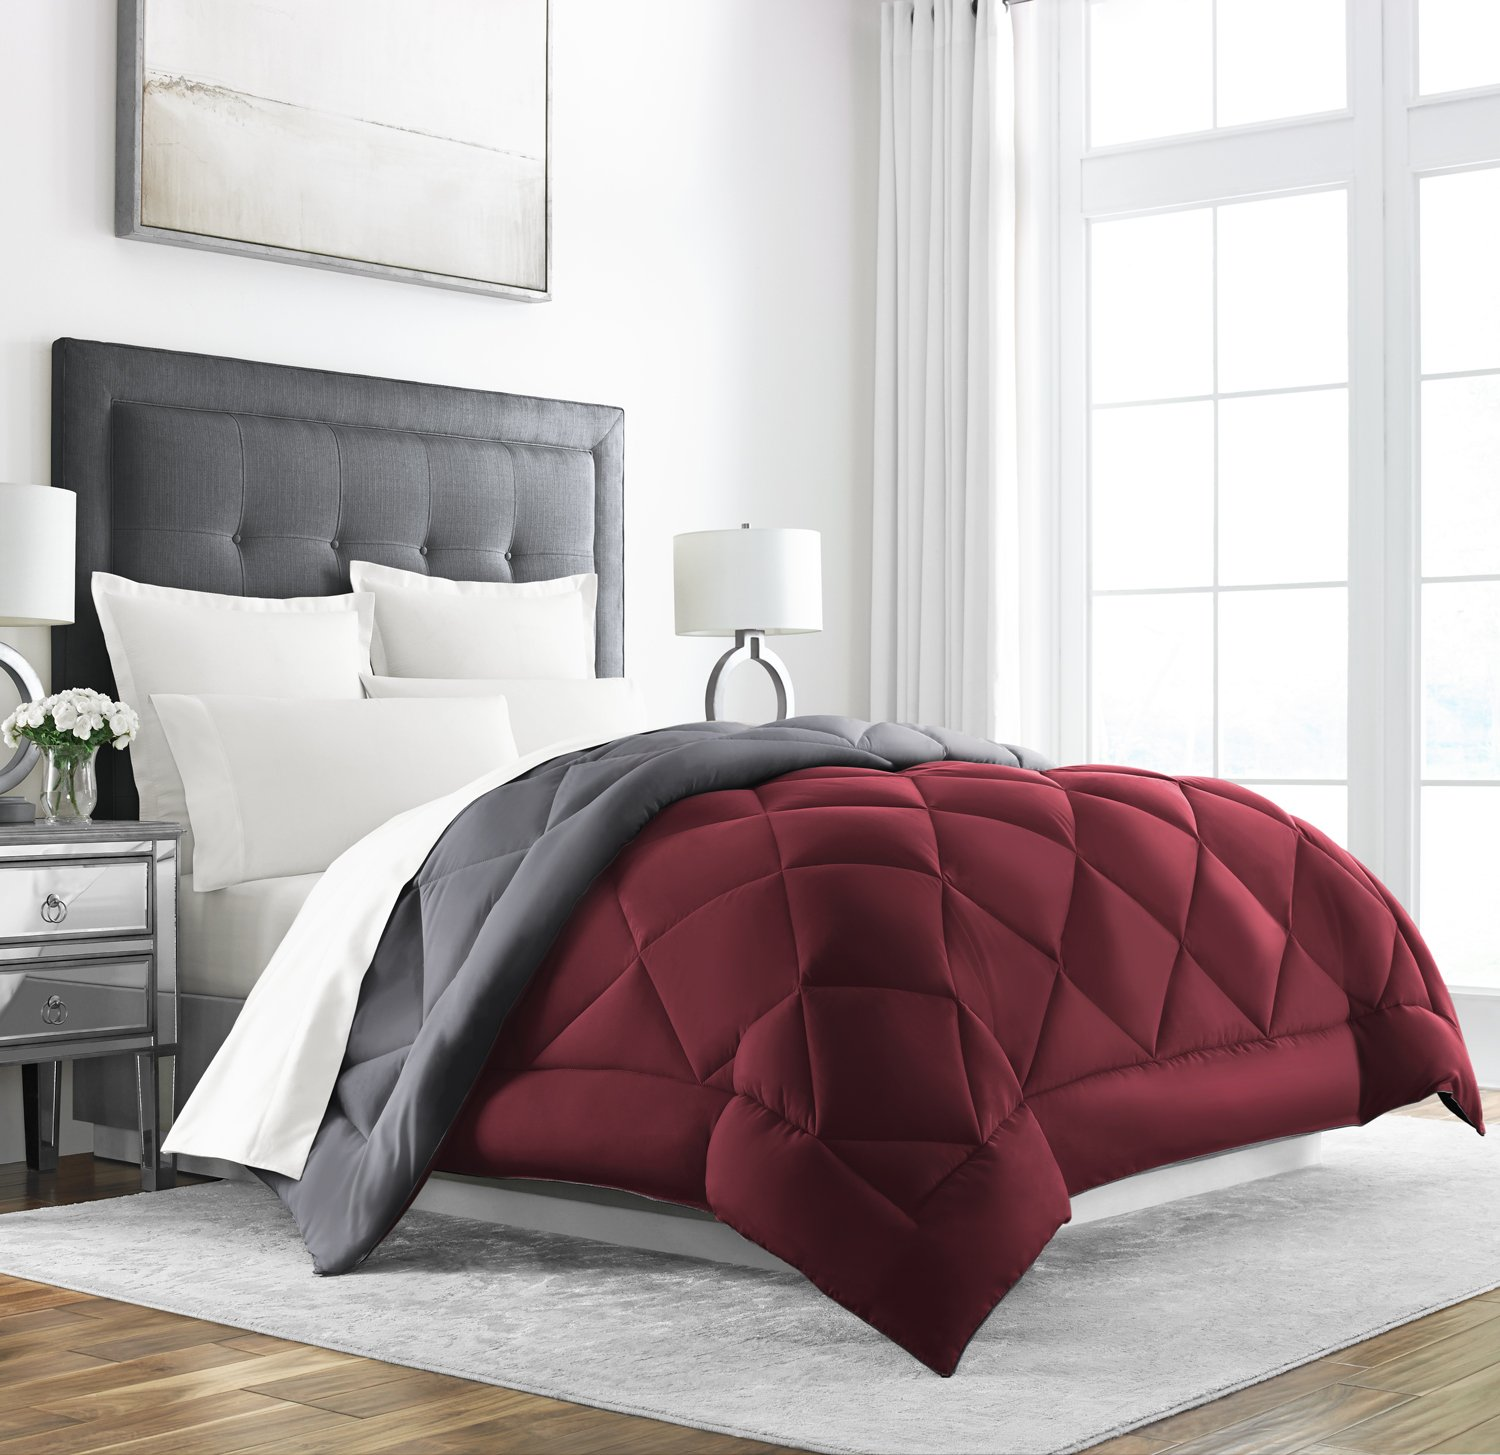 Alternative Comforter - Reversible - All Season Hotel Quality Luxury Hypoallergenic Comforter Burgundy/Grey